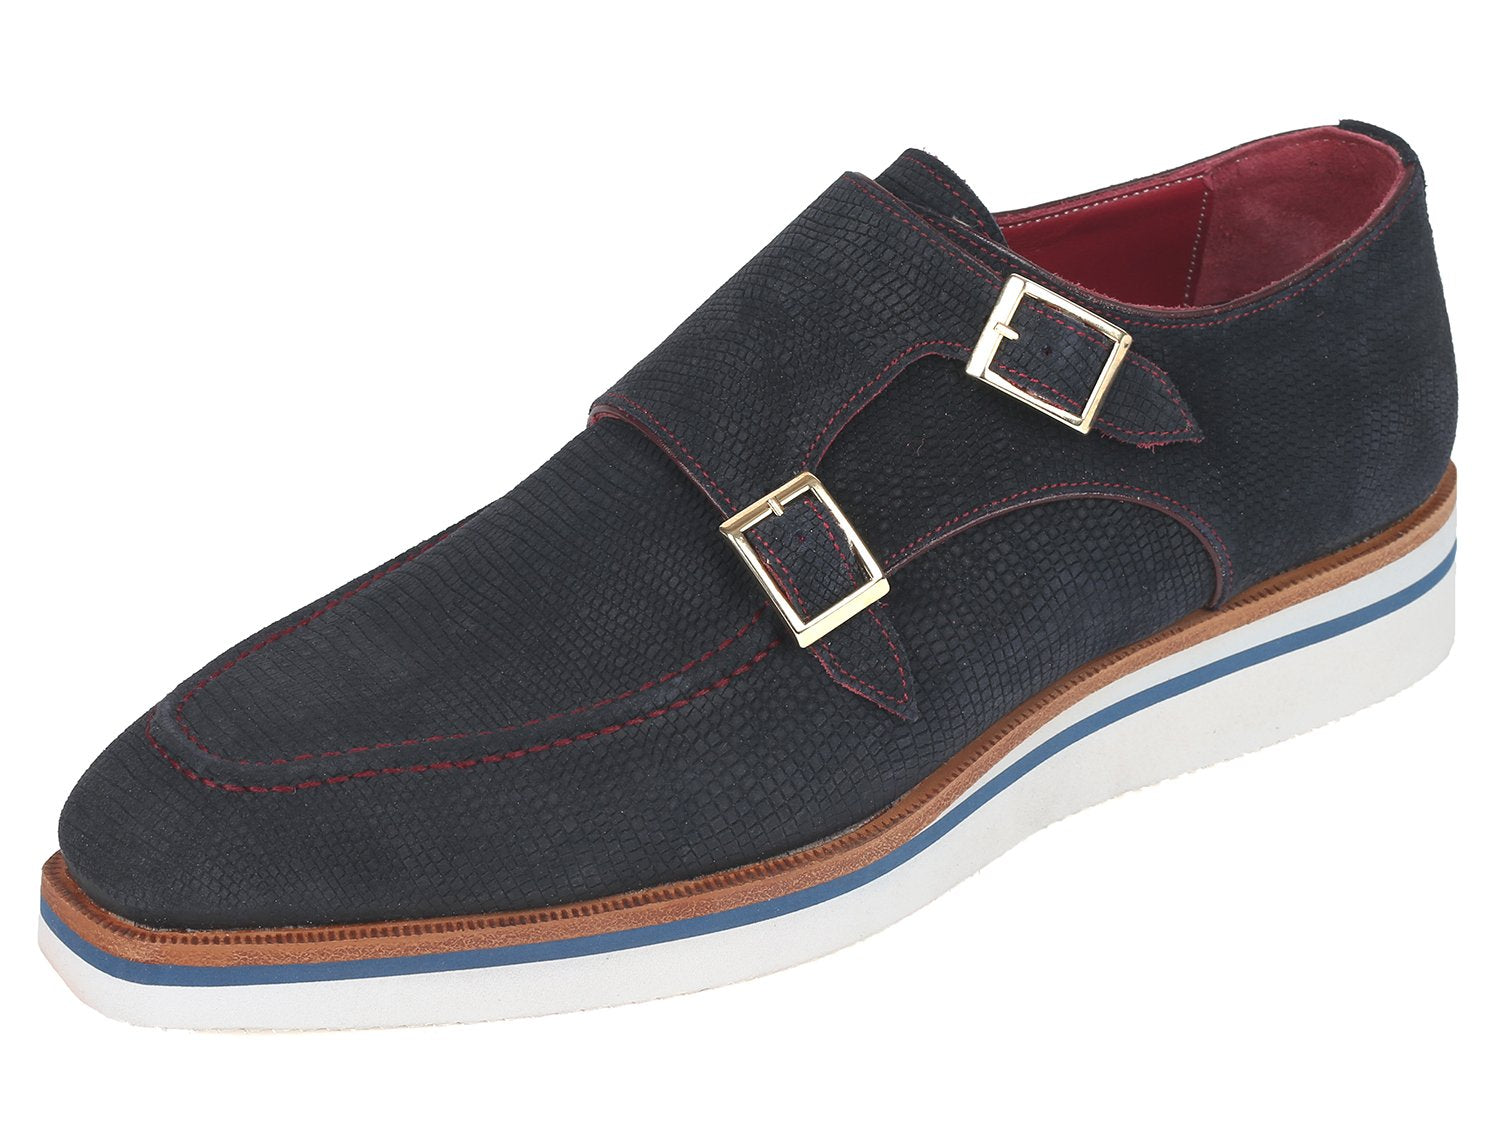 Paul Parkman Men's Smart Casual Monkstrap Shoes Navy Suede (ID#189-NVY-SD)